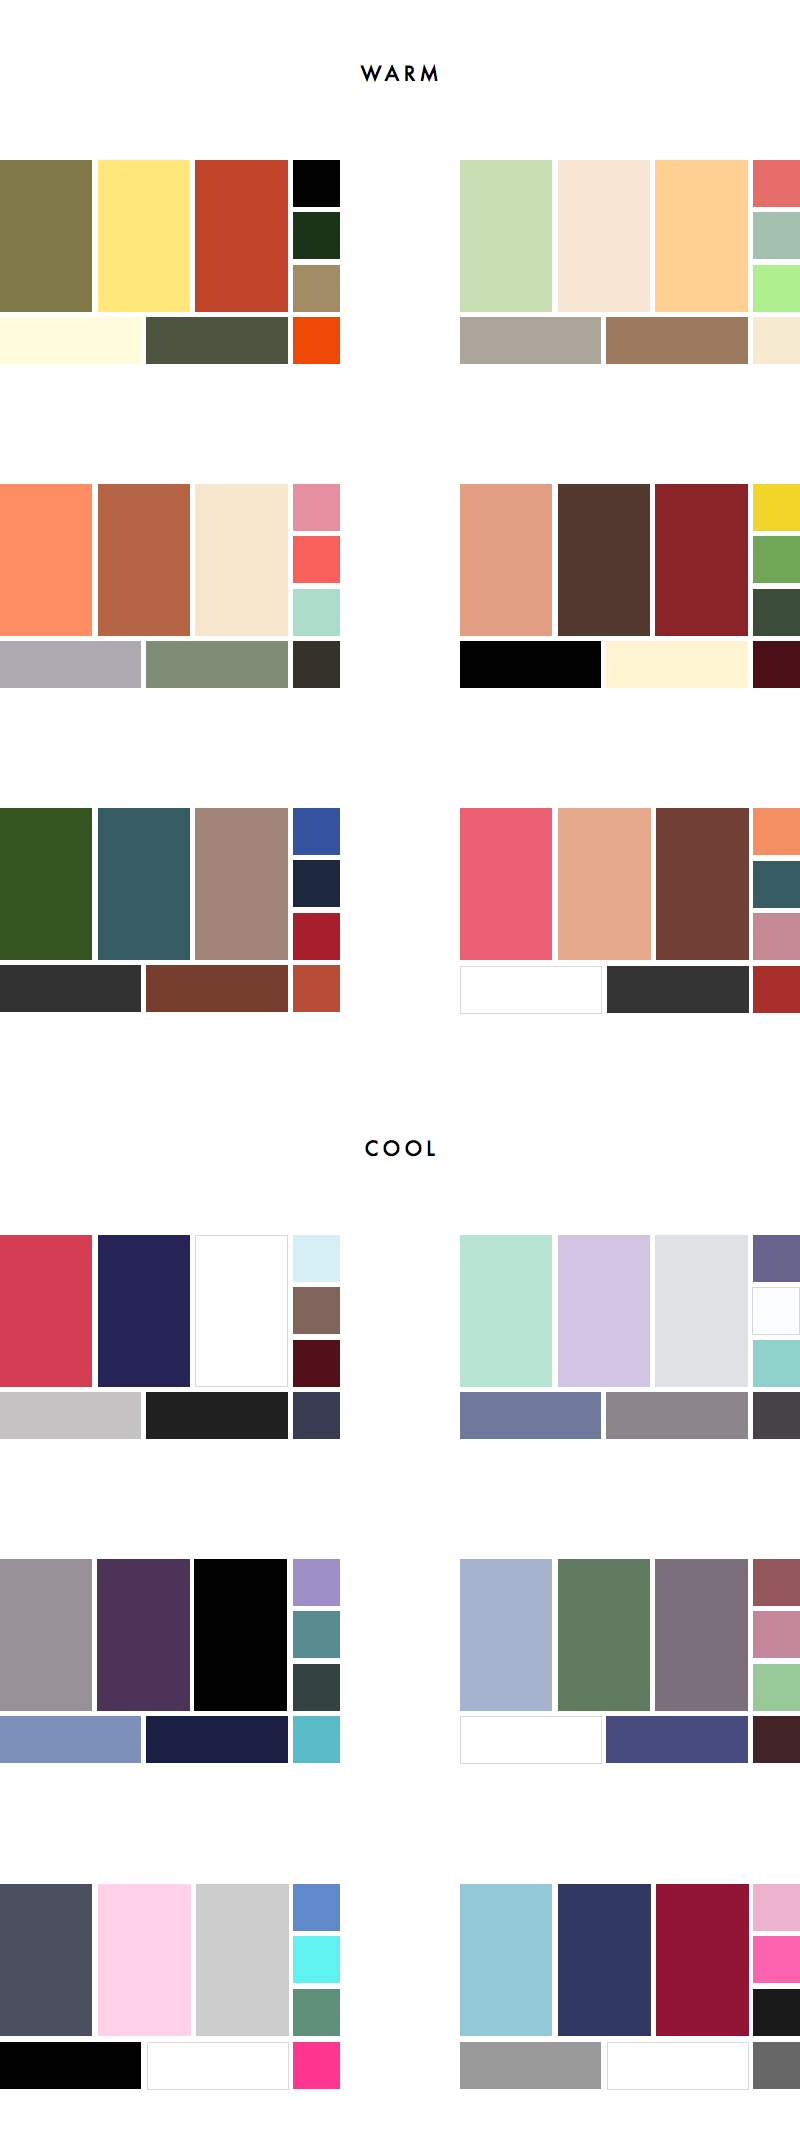 How to choose a colour palette for your wardrobe 36 sample part ii 36 sample colour palettes geenschuldenfo Gallery